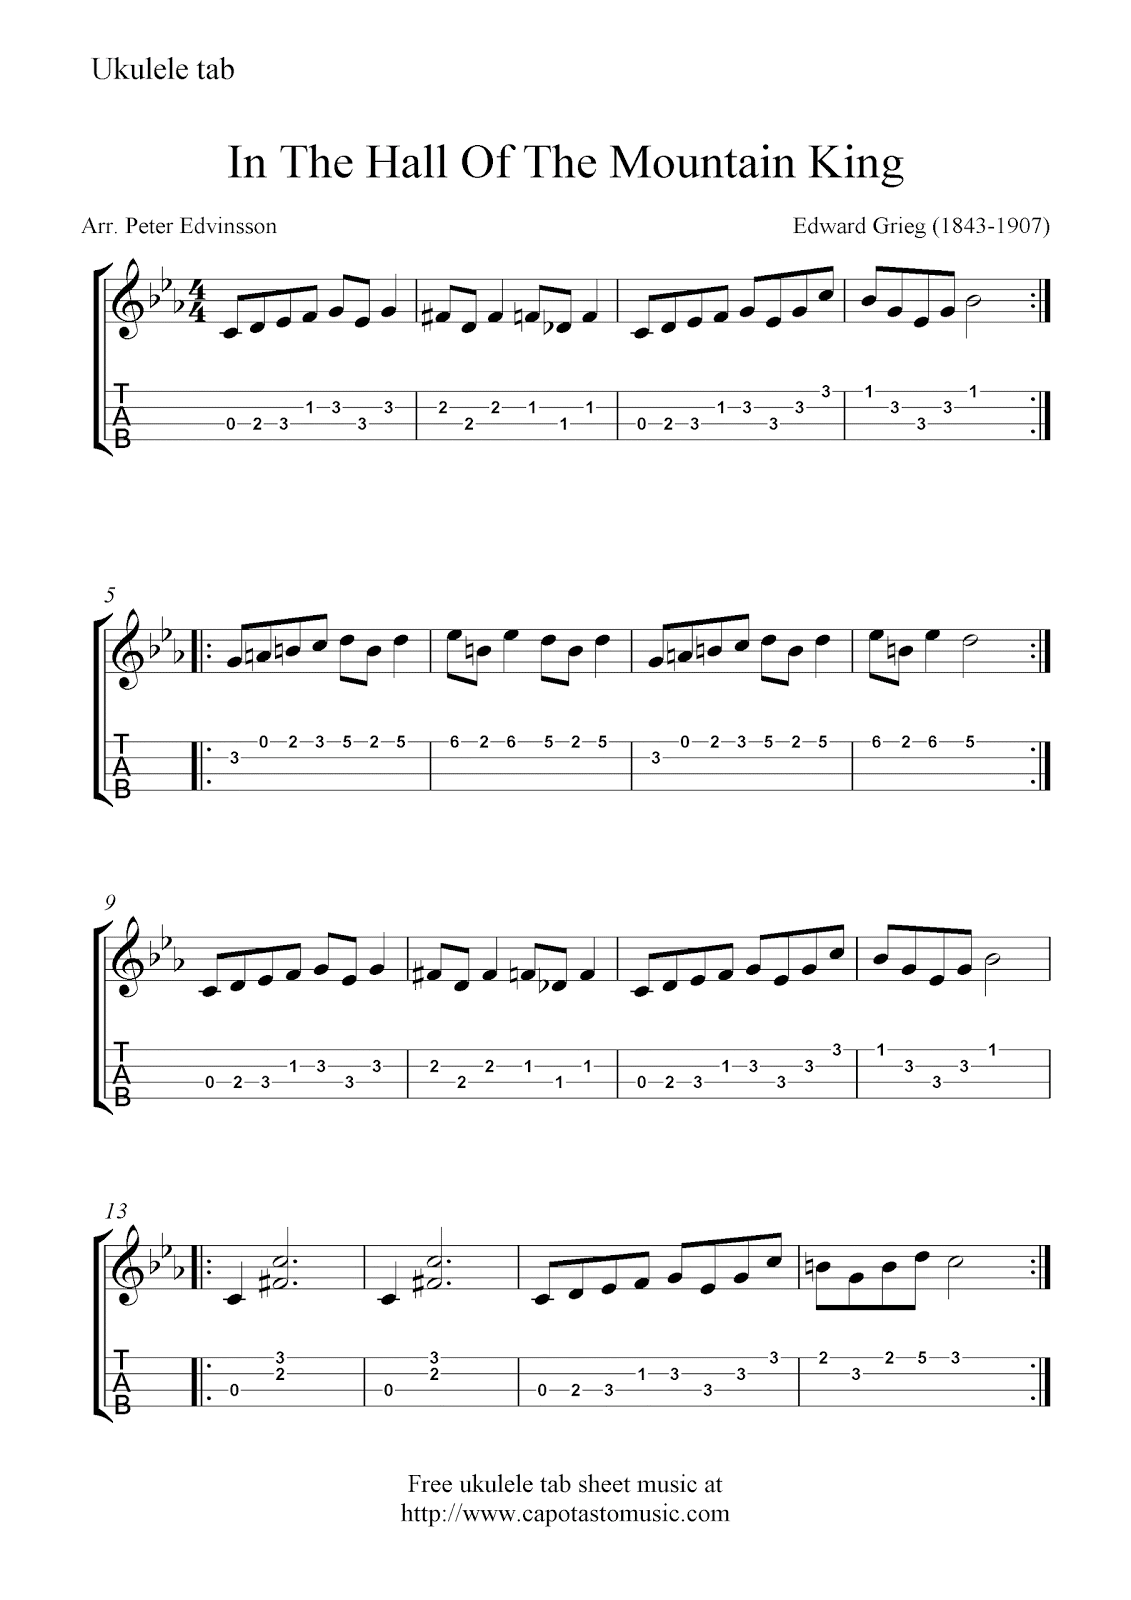 Free ukulele tab sheet music, In The Hall Of The Mountain King